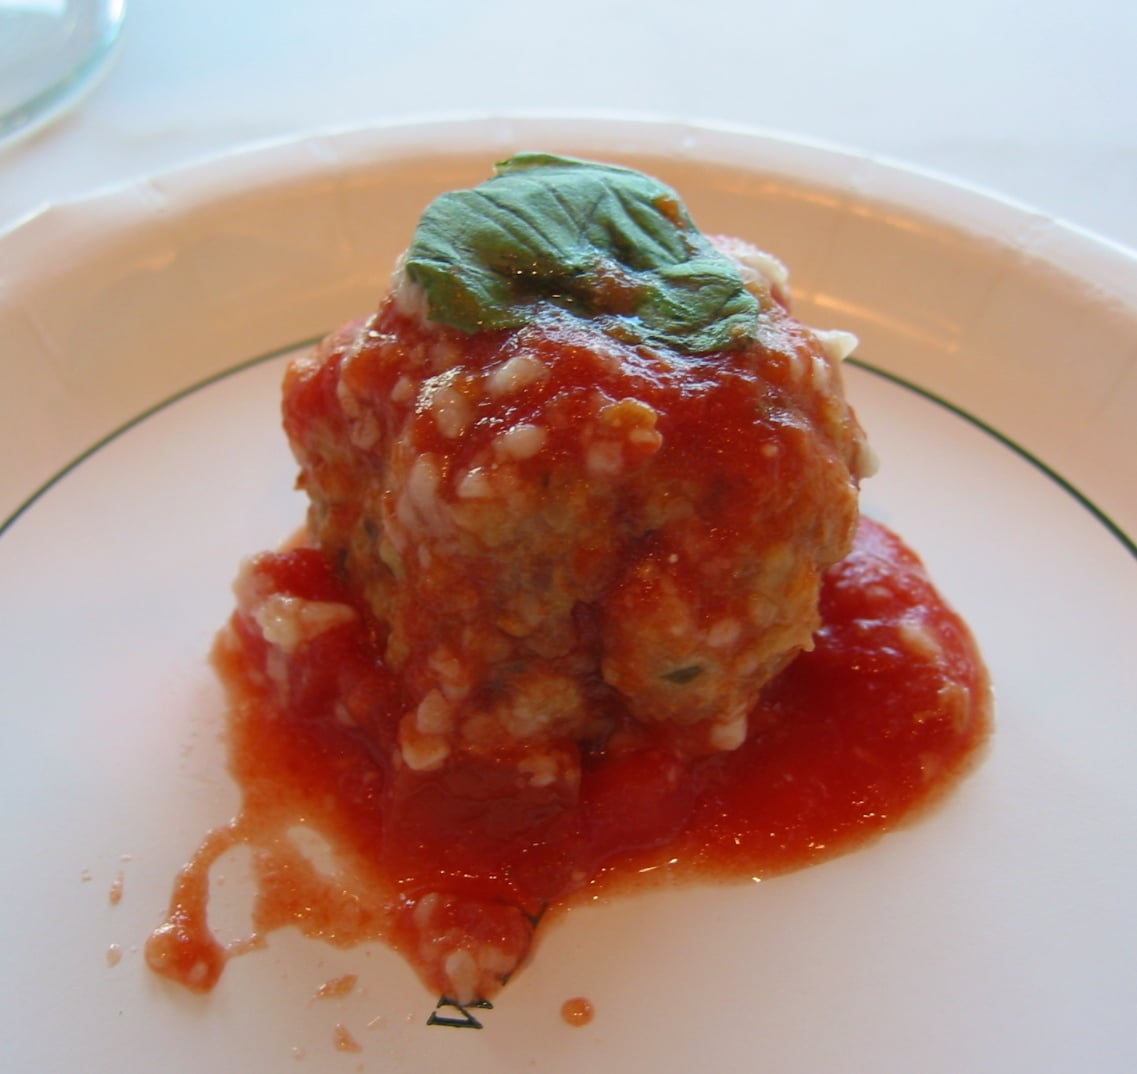 The Monday Meatballs absorbed the flavor of the San Marzano tomato sauce.